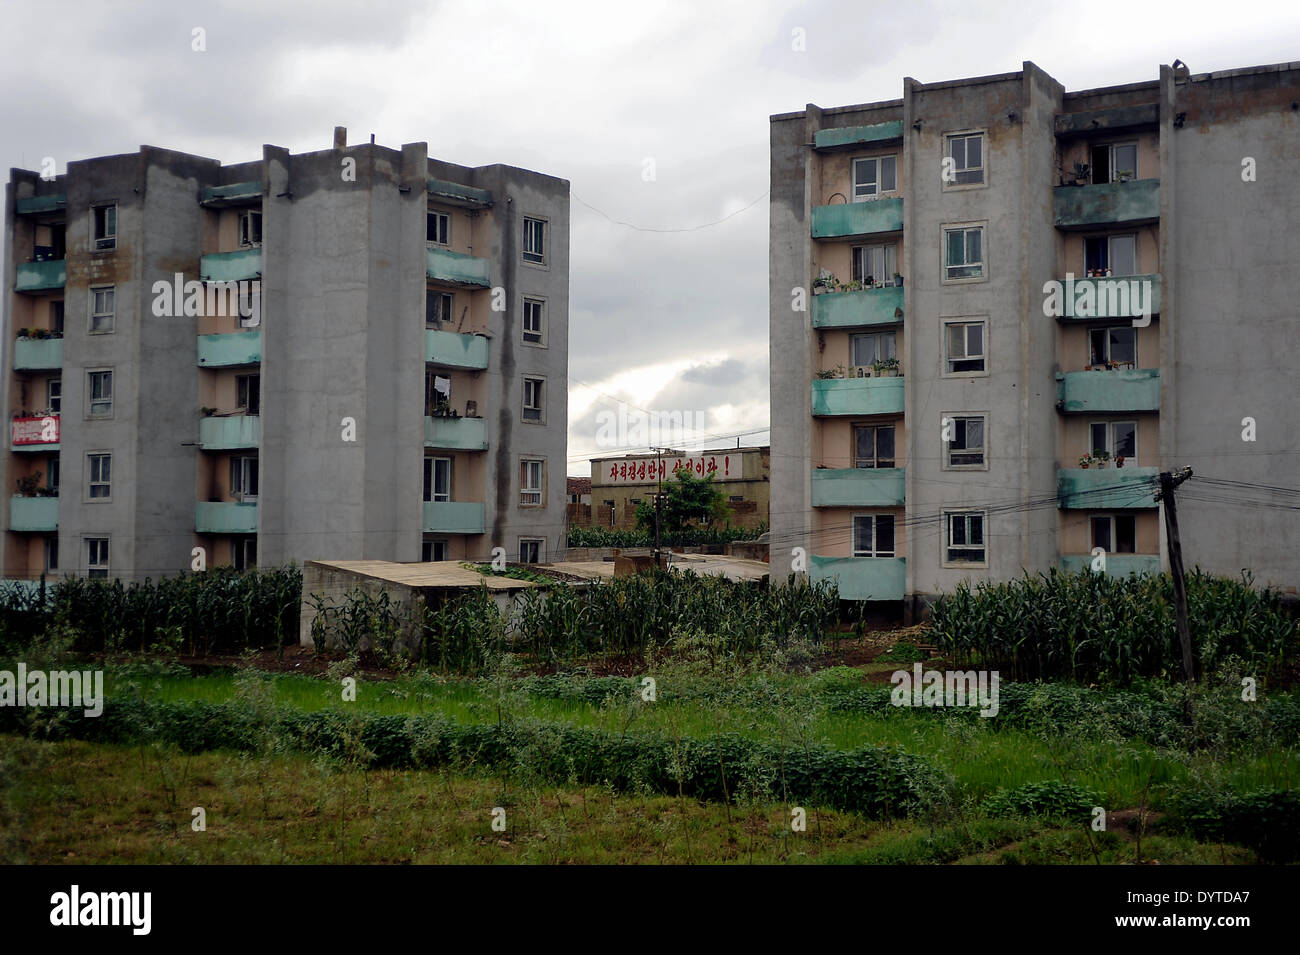 Residential Houses In Rural North Korea Stock Photo 68764143 Alamy